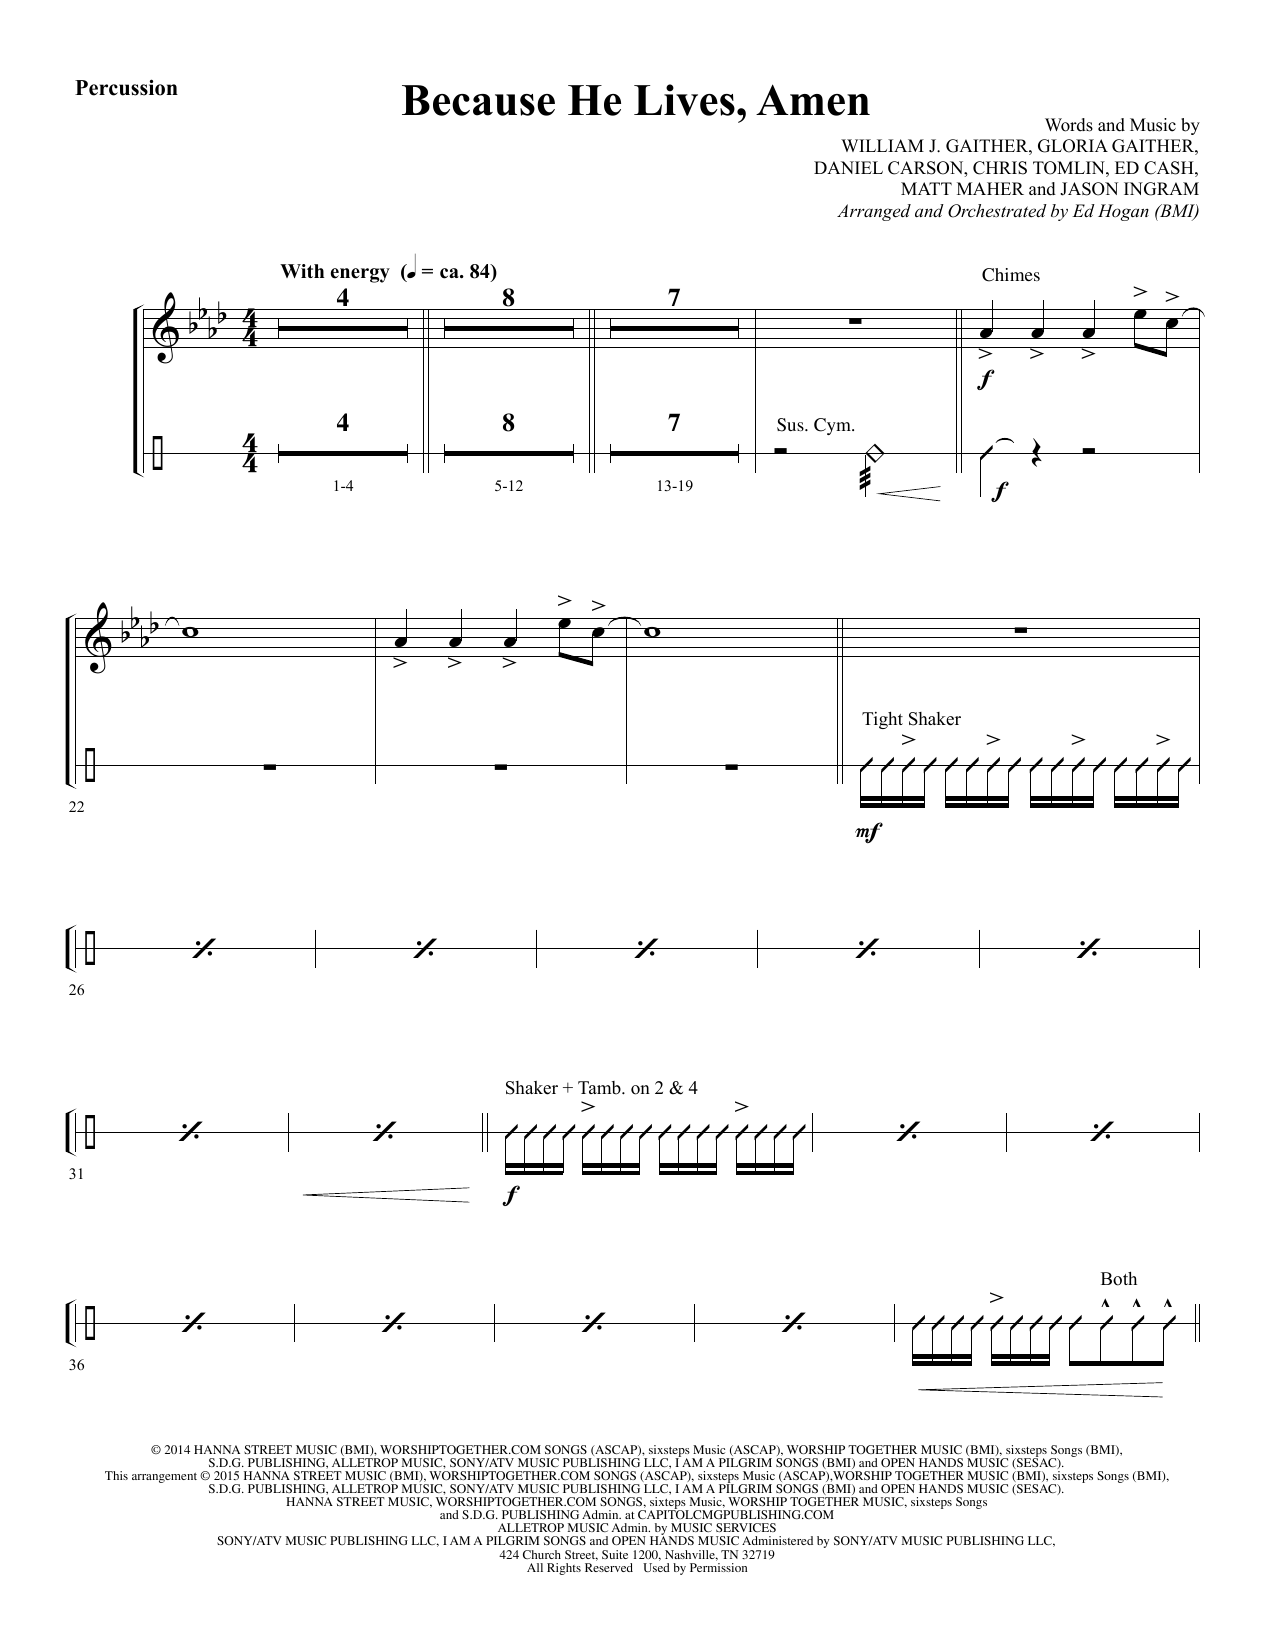 Because He Lives, Amen - Percussion Sheet Music